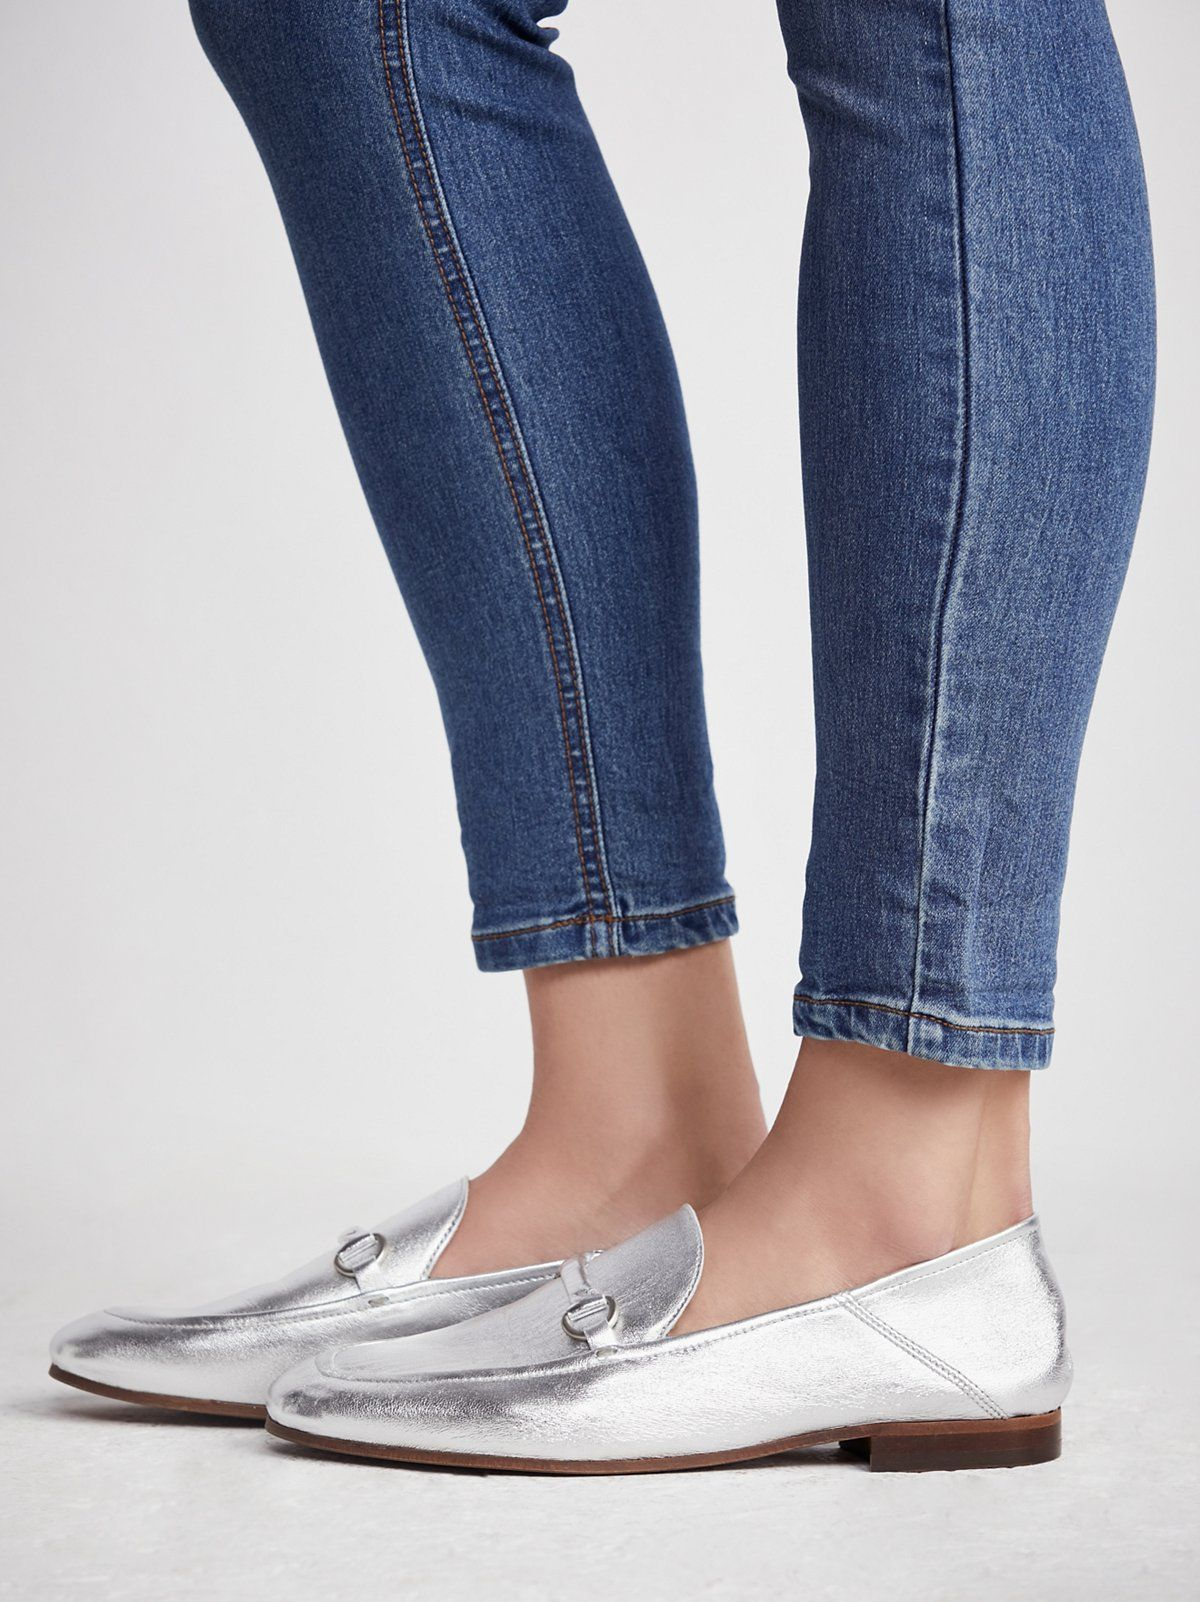 Remington Loafer | Shimmering metallic or femme pink loafer featuring a classic design with a metal chain accent on the top of the foot.